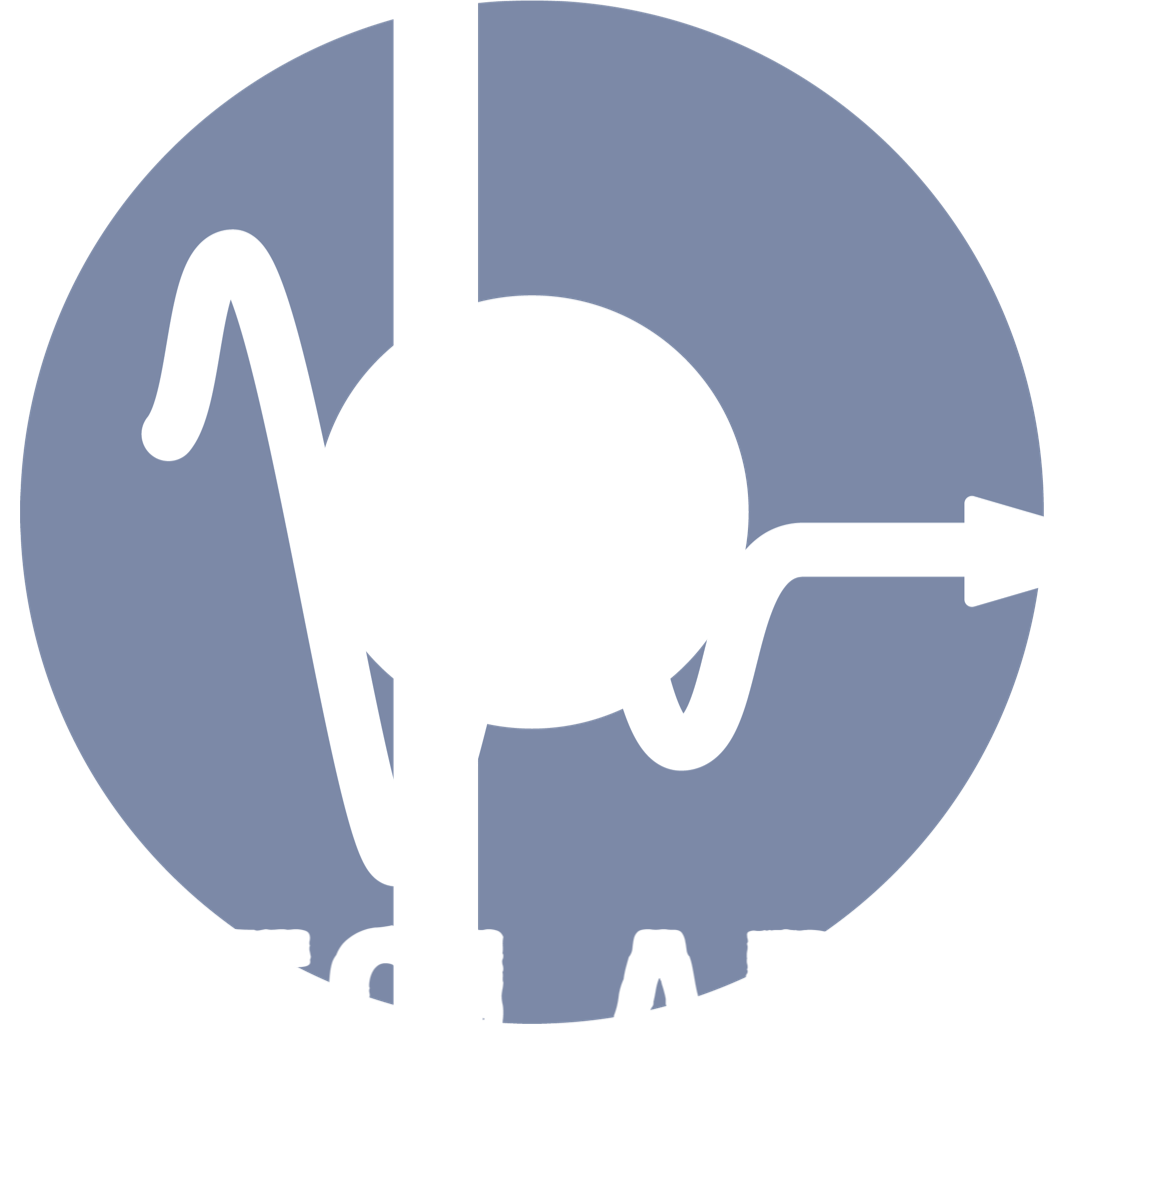 Worship clipart perseverance. Lead the movement declare